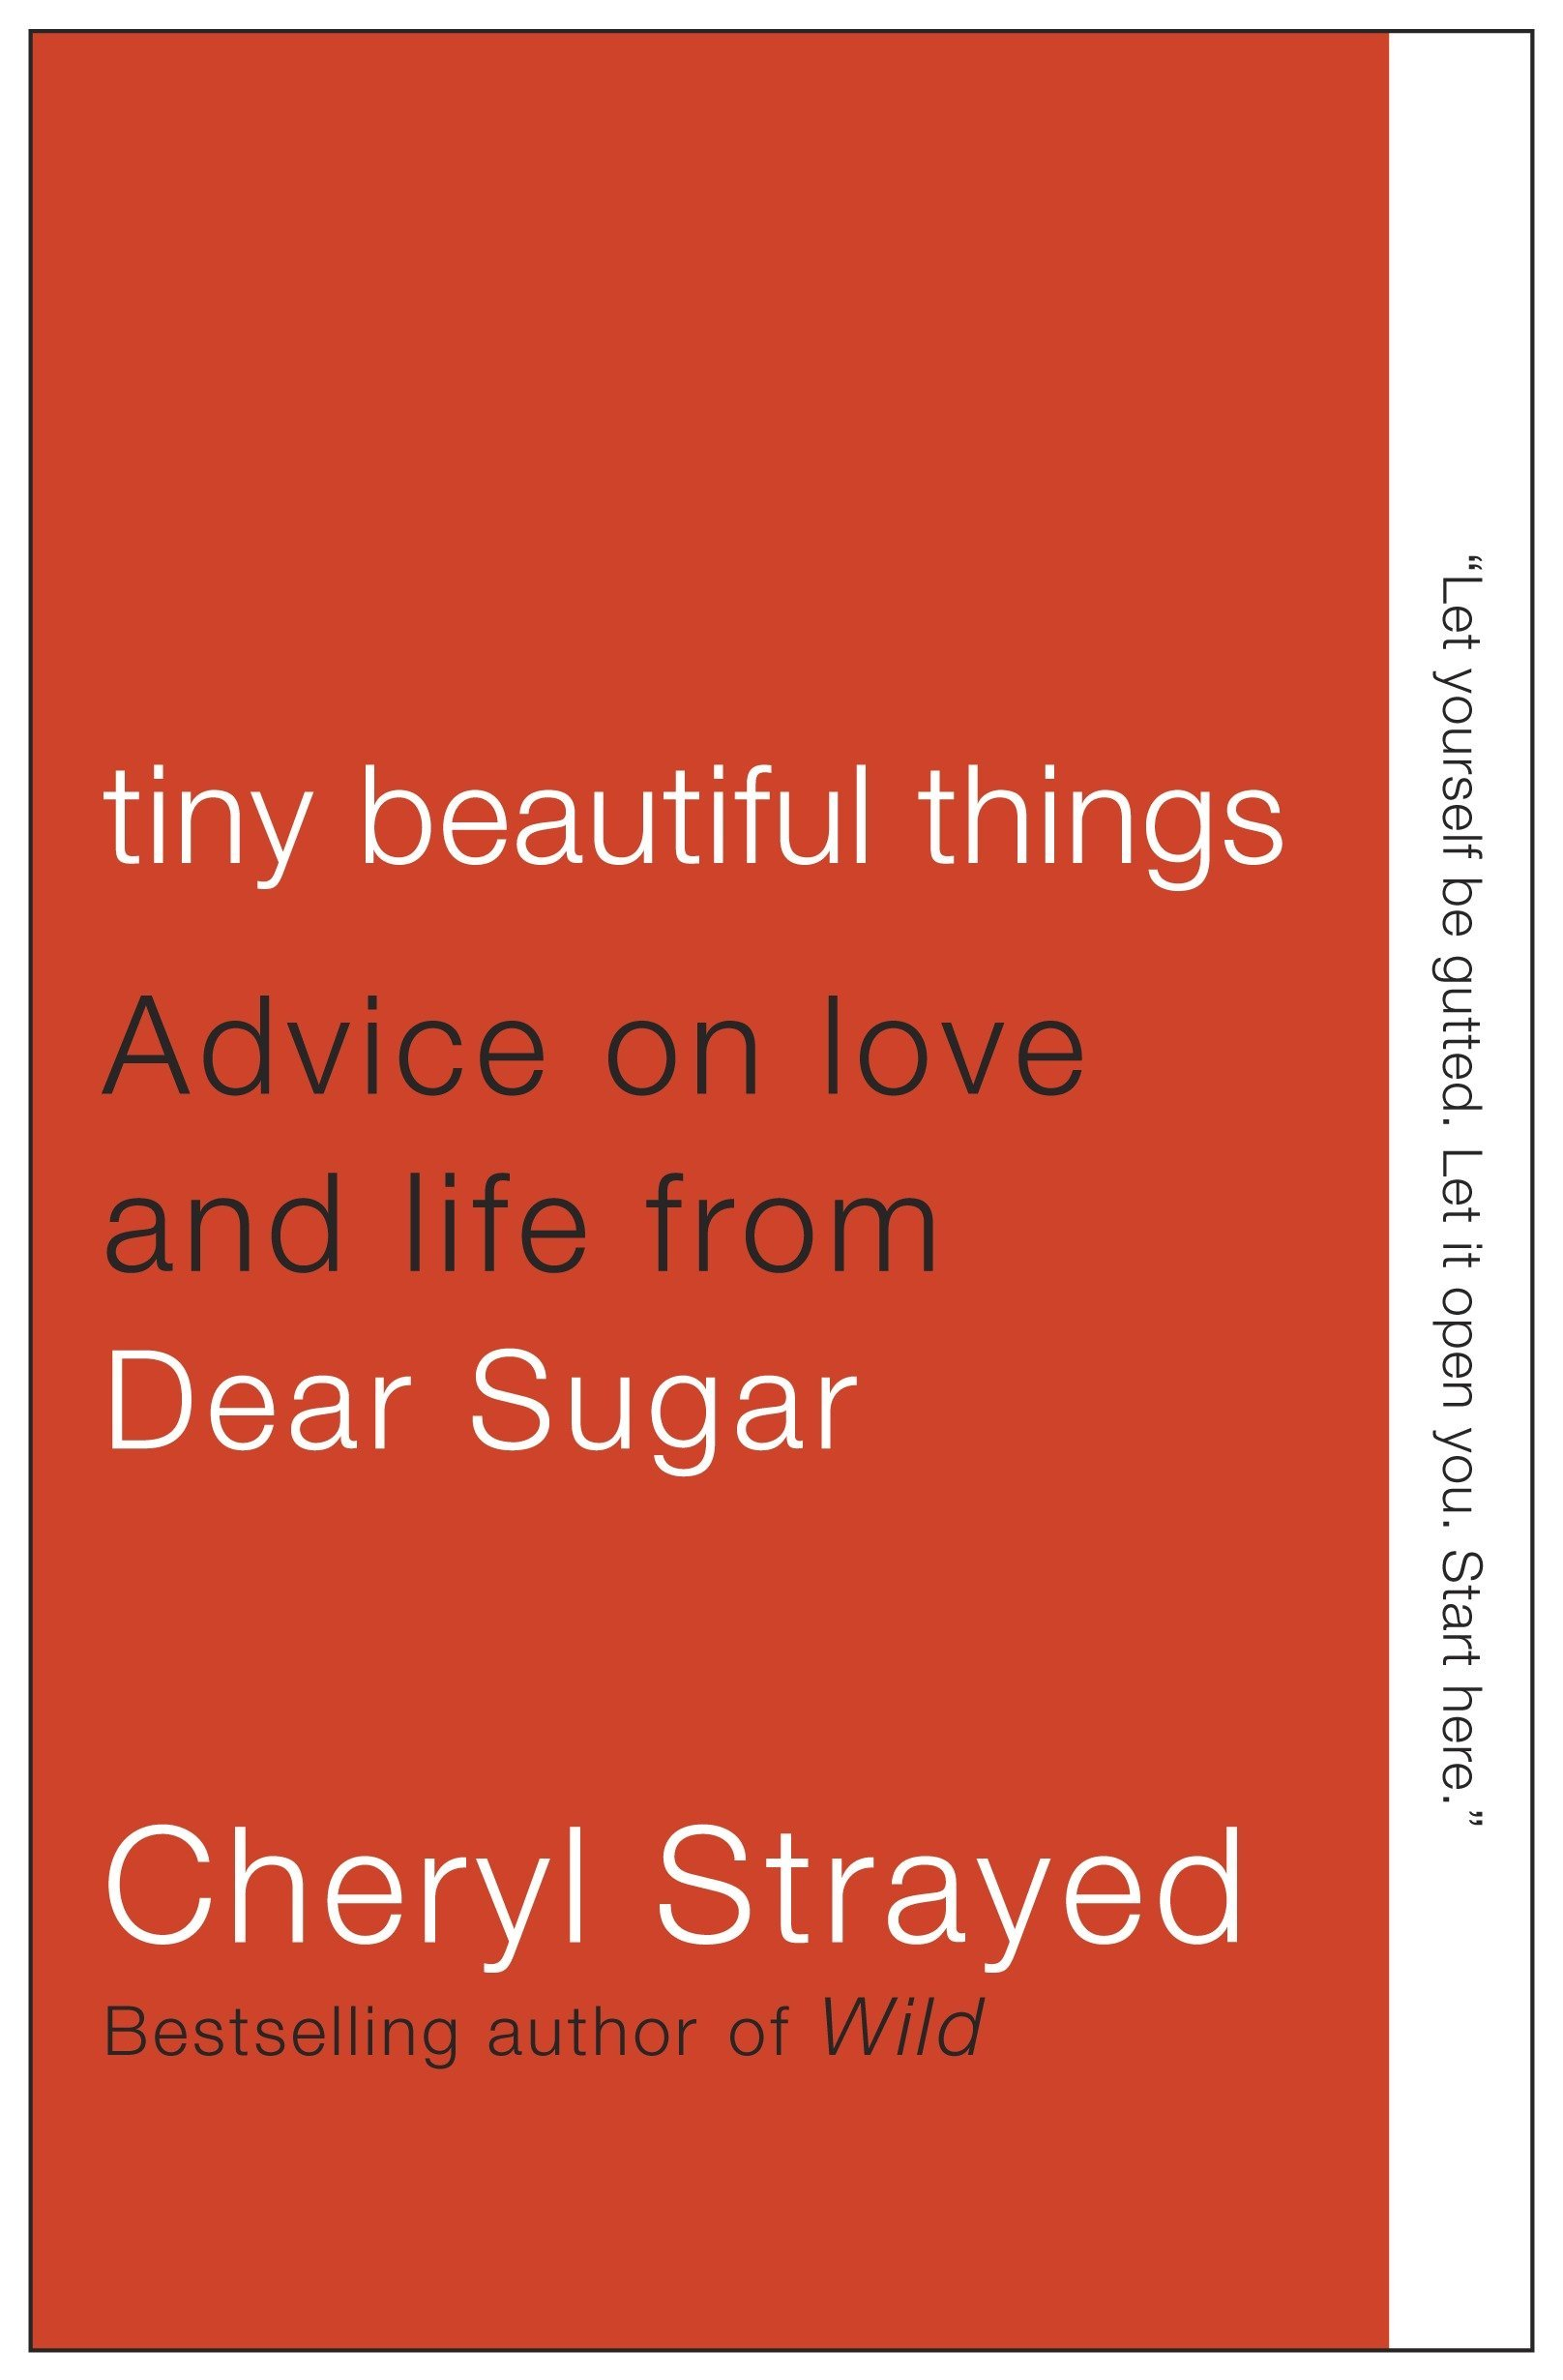 'Tiny Beautiful Things: Advice on Love and Life from Dear Sugar' by Cheryl Strayed